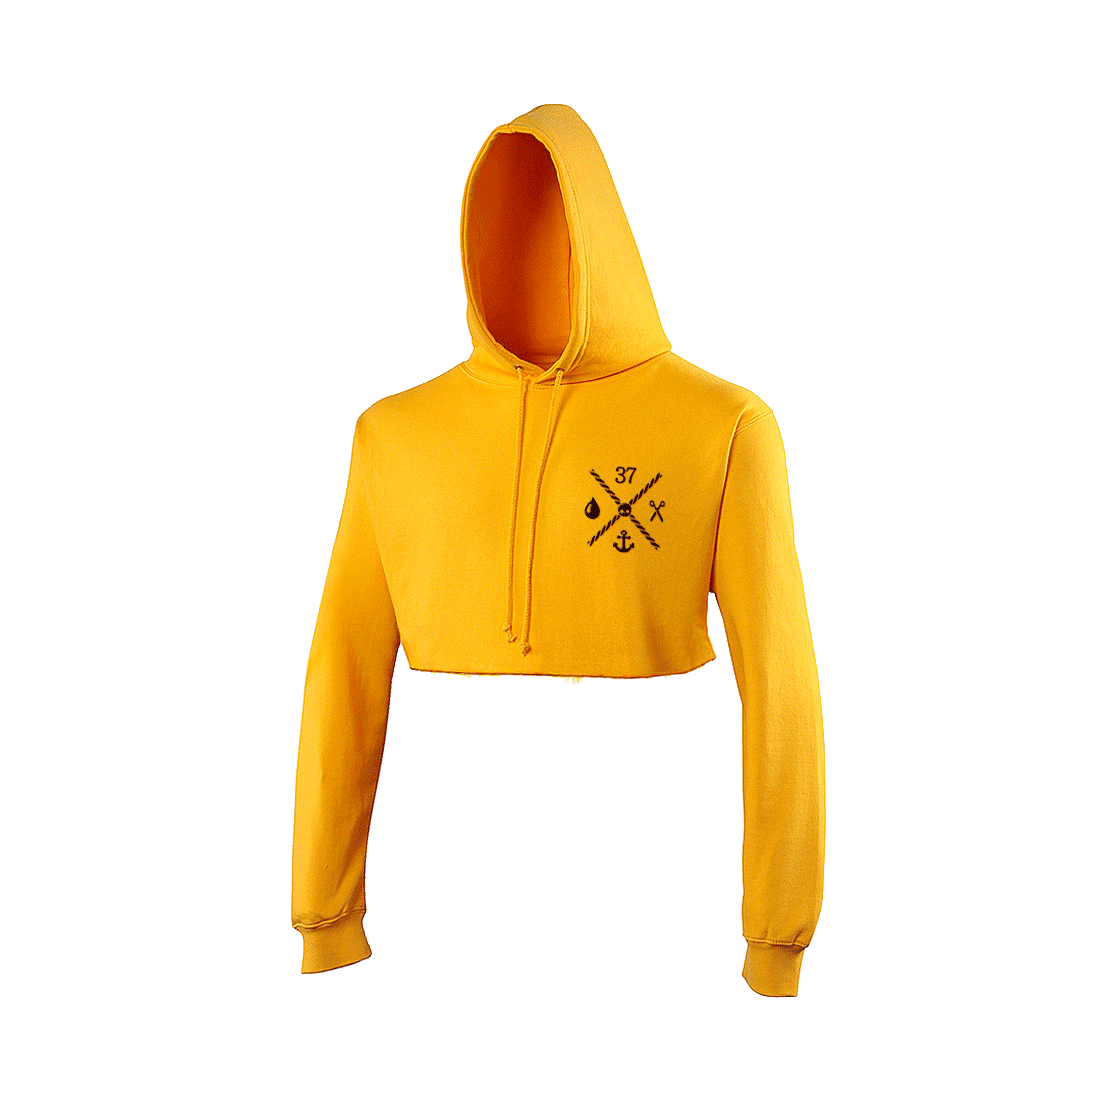 Hoodie transparent cropped. The quarter masters honey